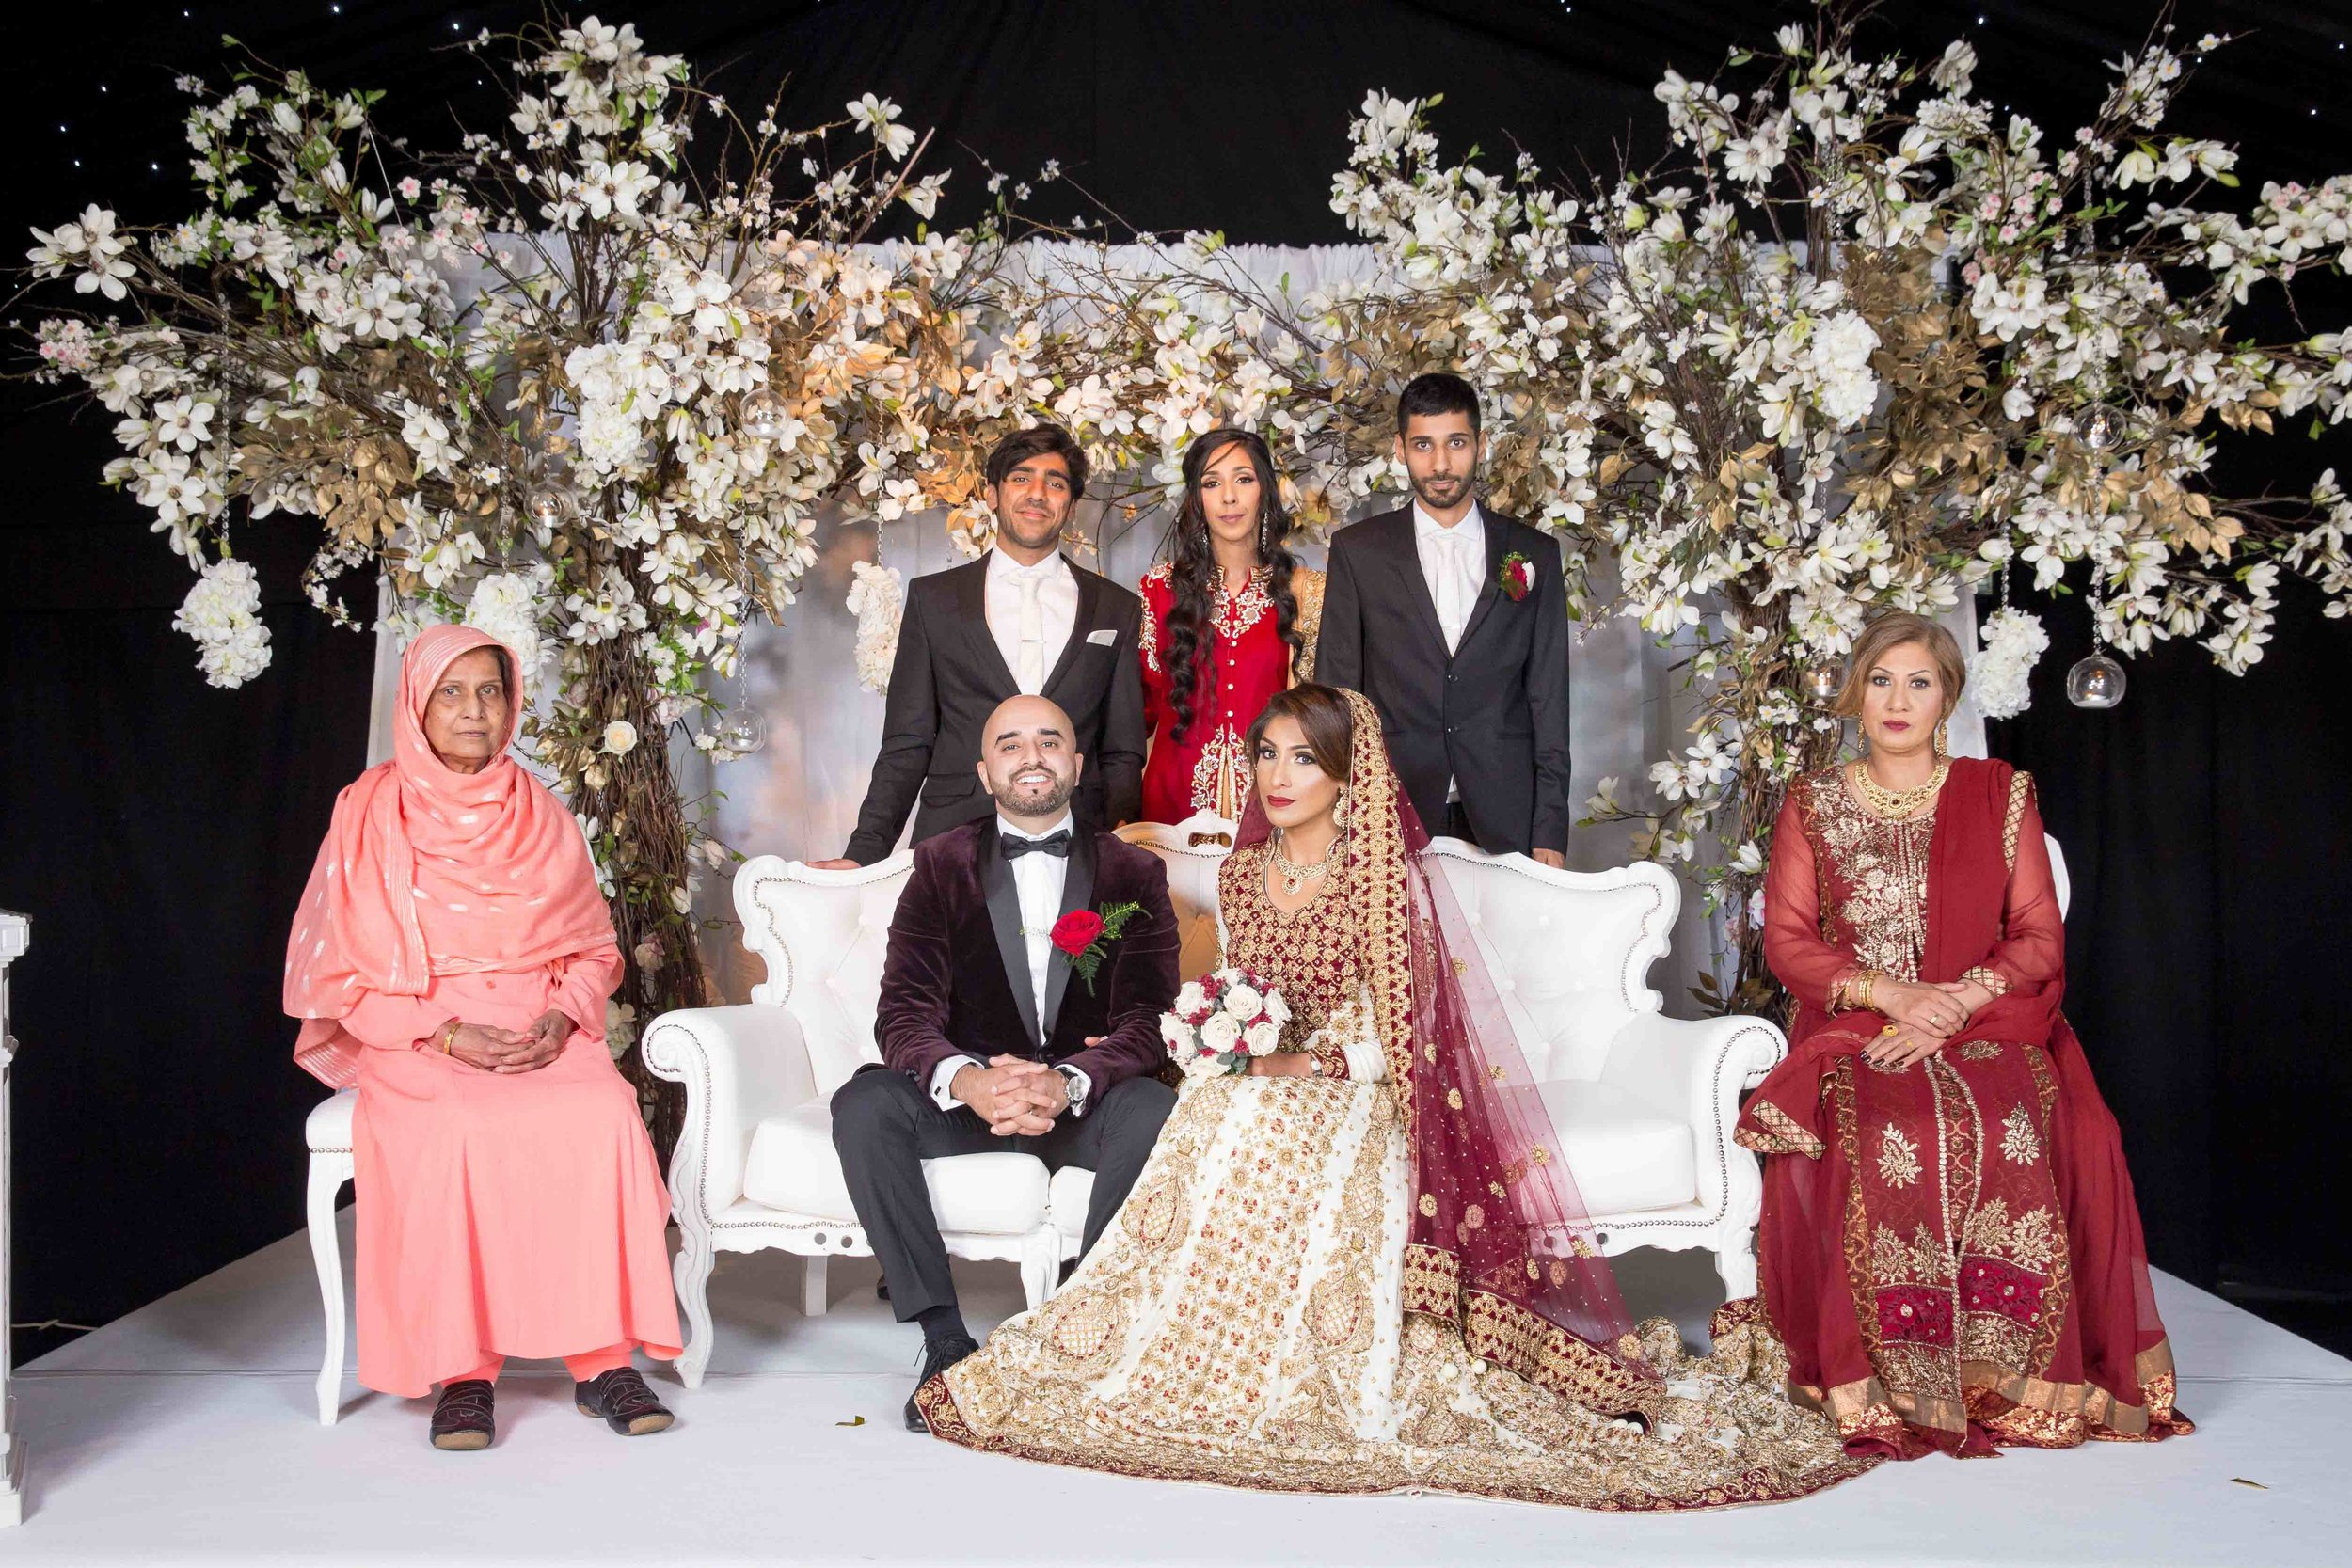 Asian Wedding Photographer Opu Sultan Photography Lyme Park Scotland Edinburgh Glasgow London Manchester Liverpool Birmingham Wedding Photos prewed shoot Azman & Saira Blog-113.jpg